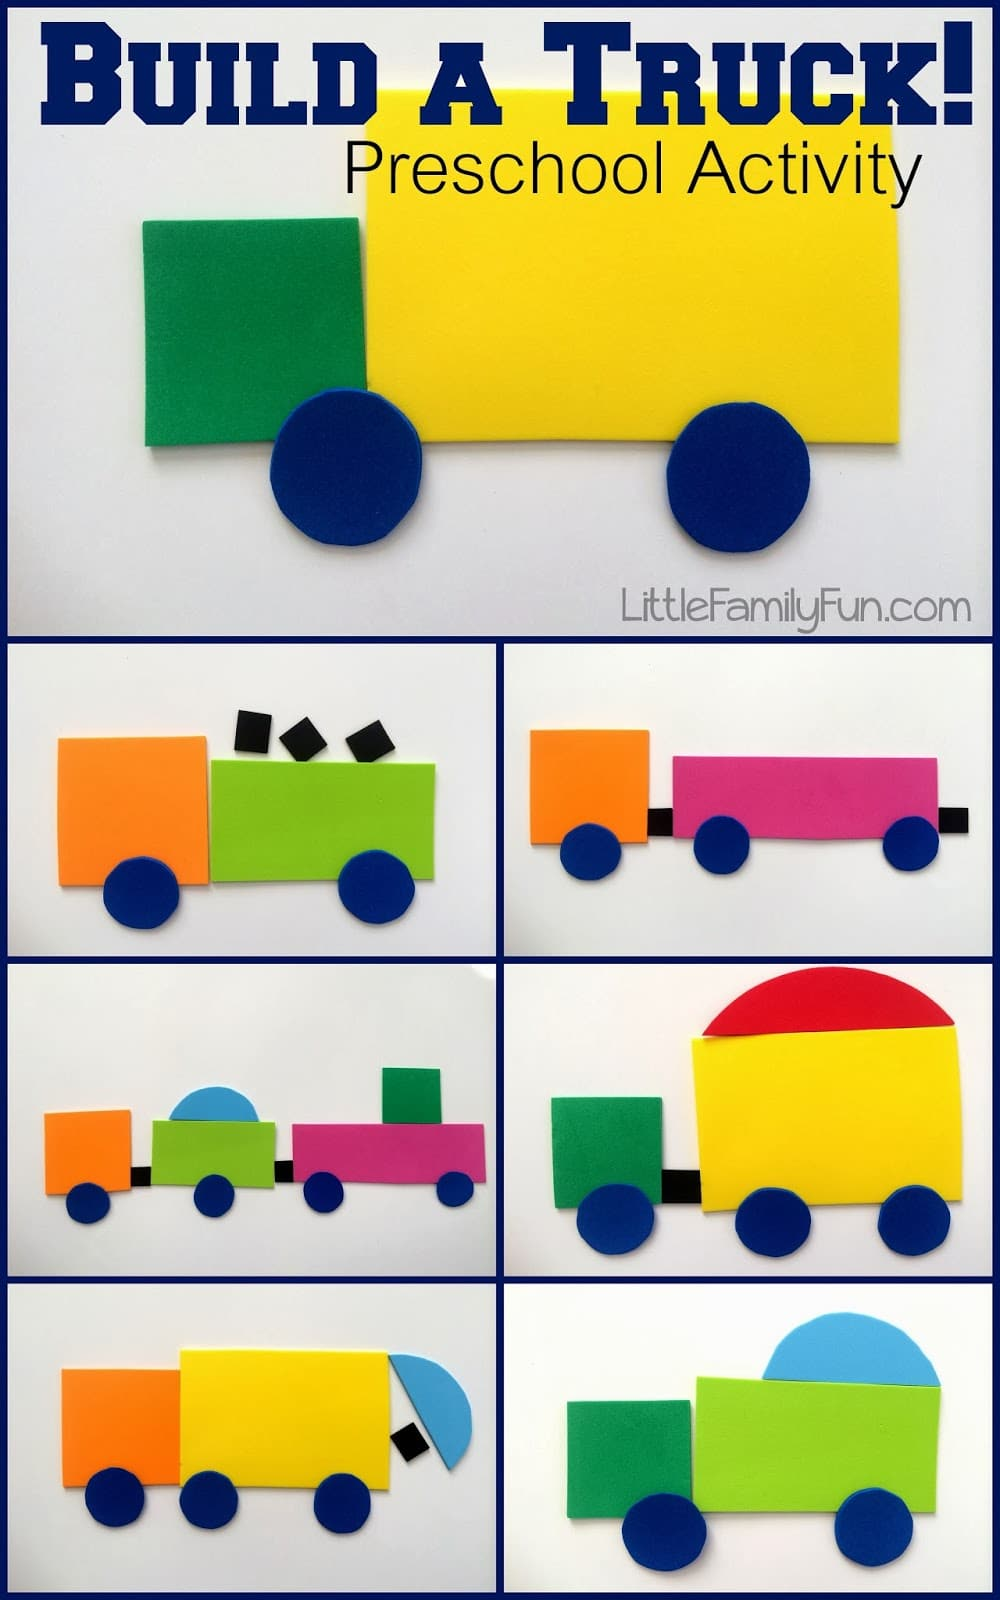 Build a Truck Shape Activity